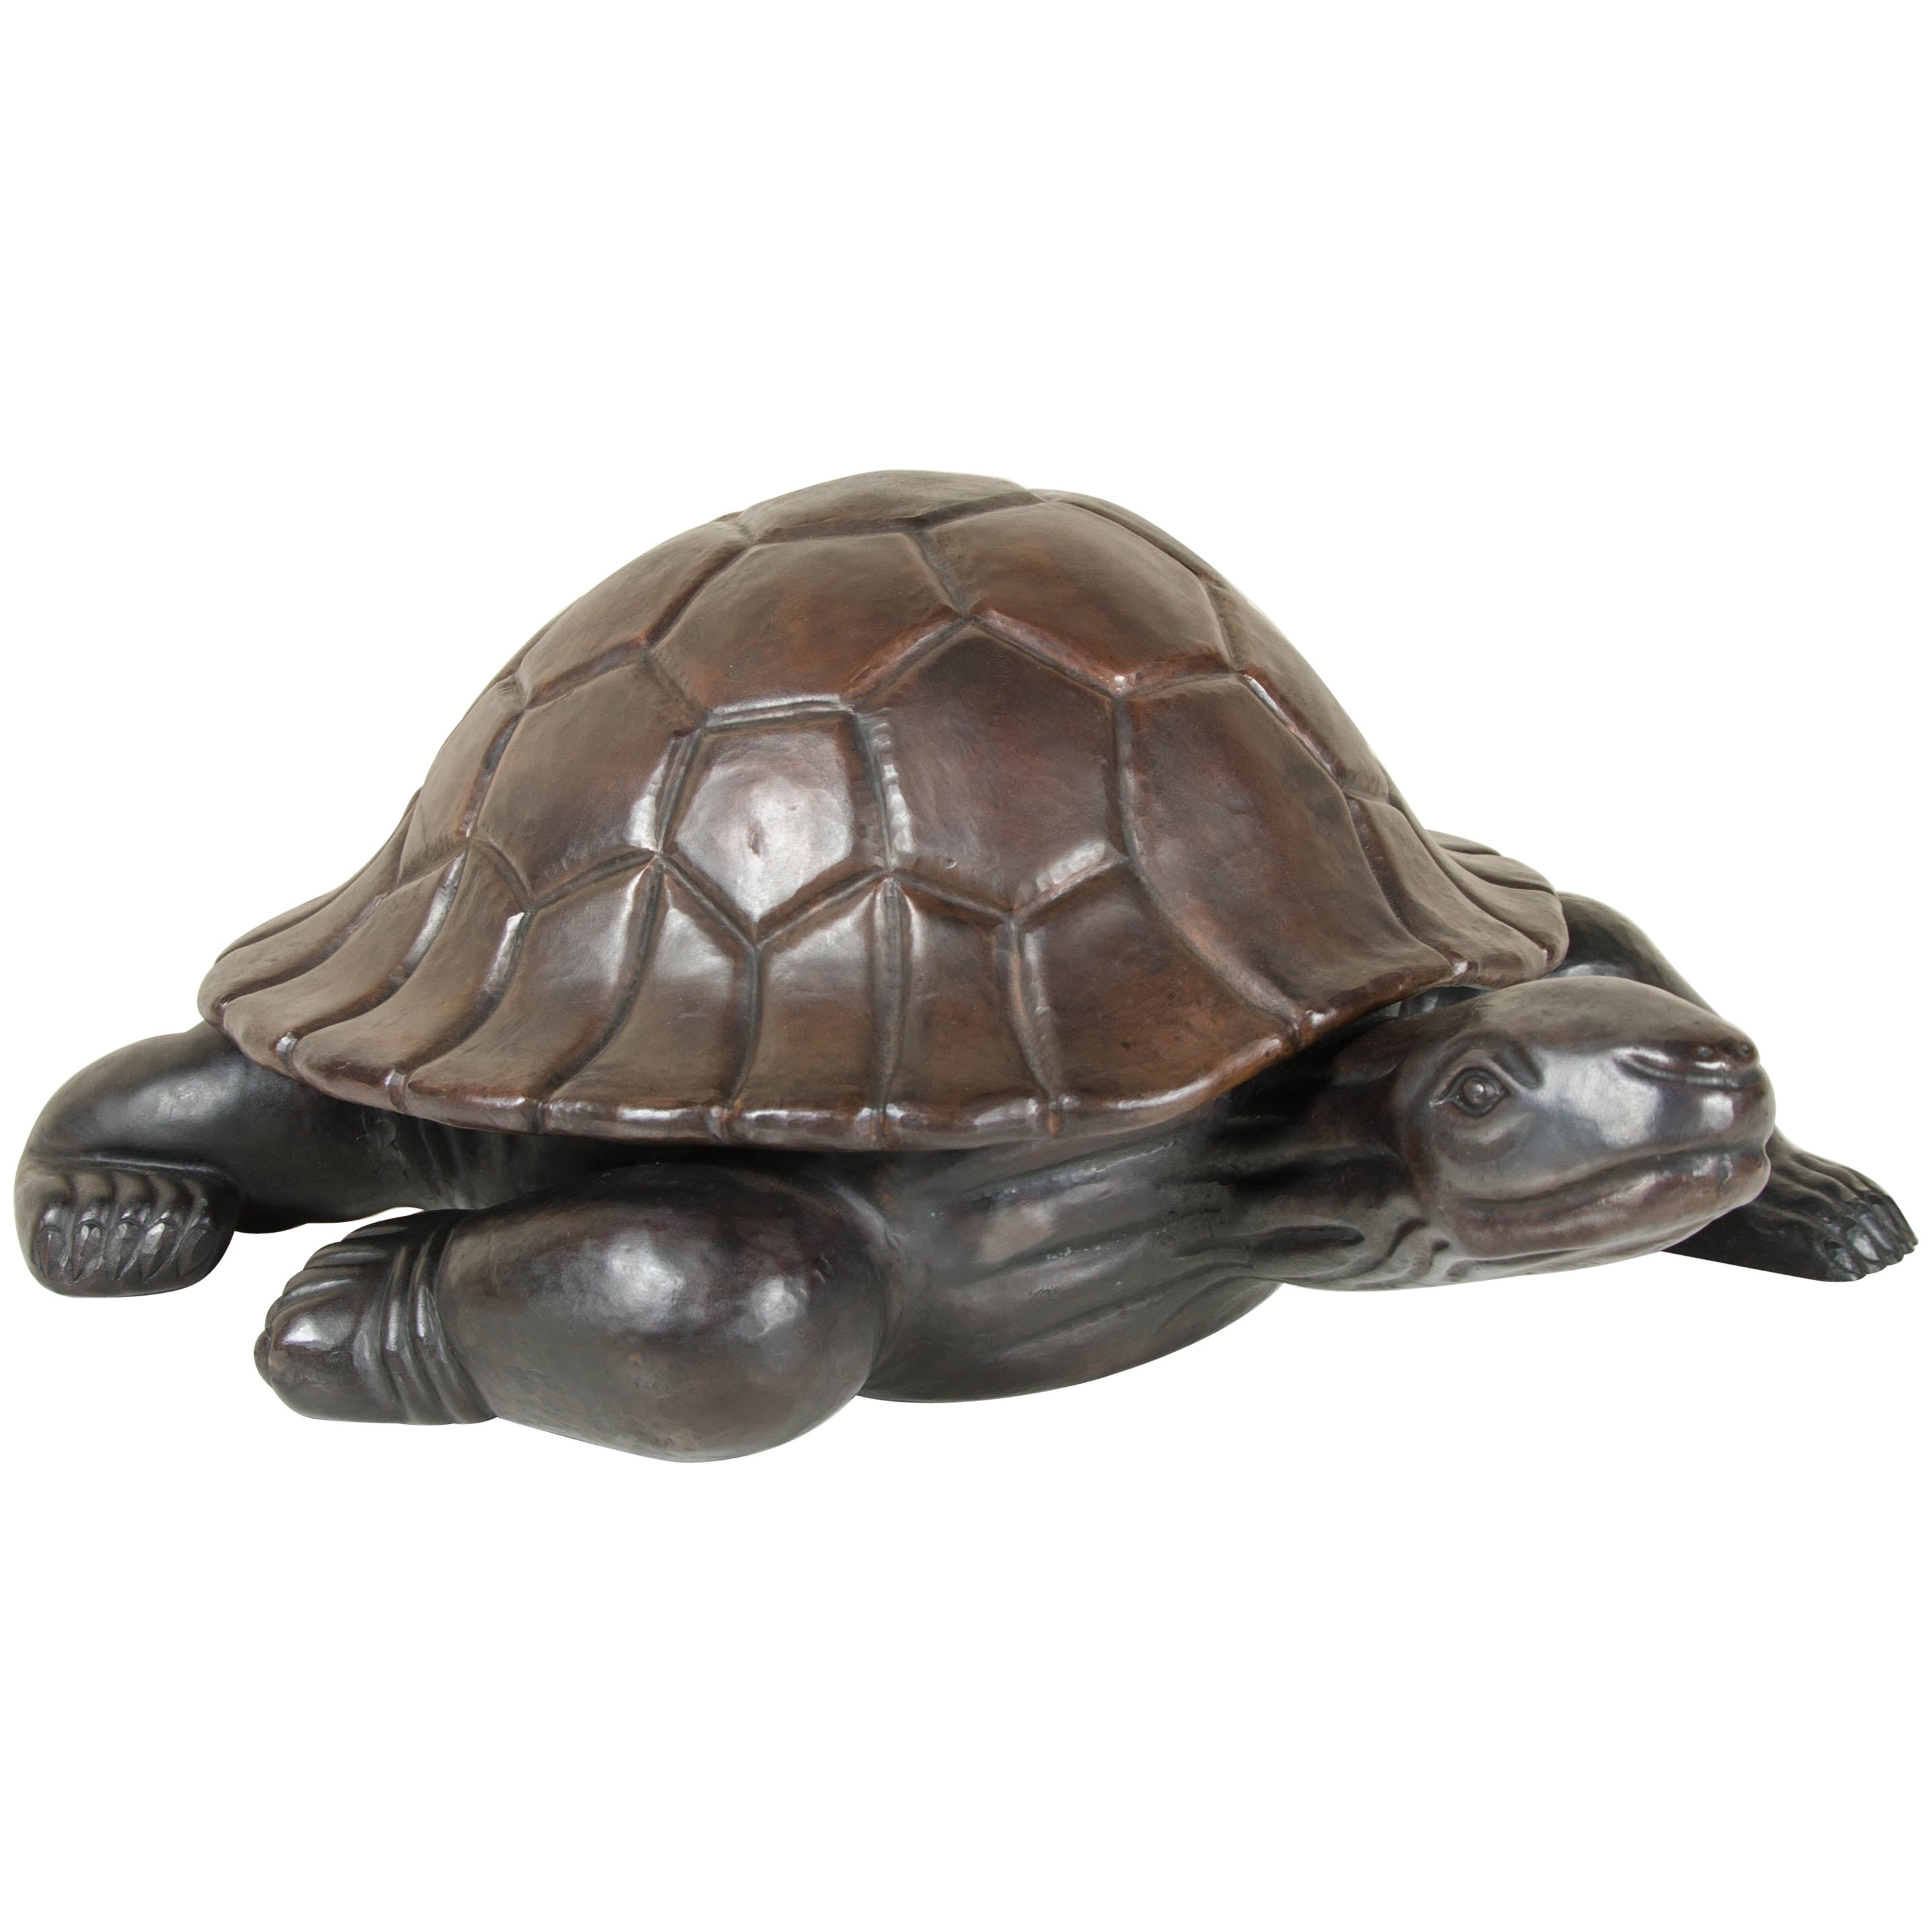 Antique Copper Turtle Sculpture by Robert Kuo, Hand Repousse, Limited Edition